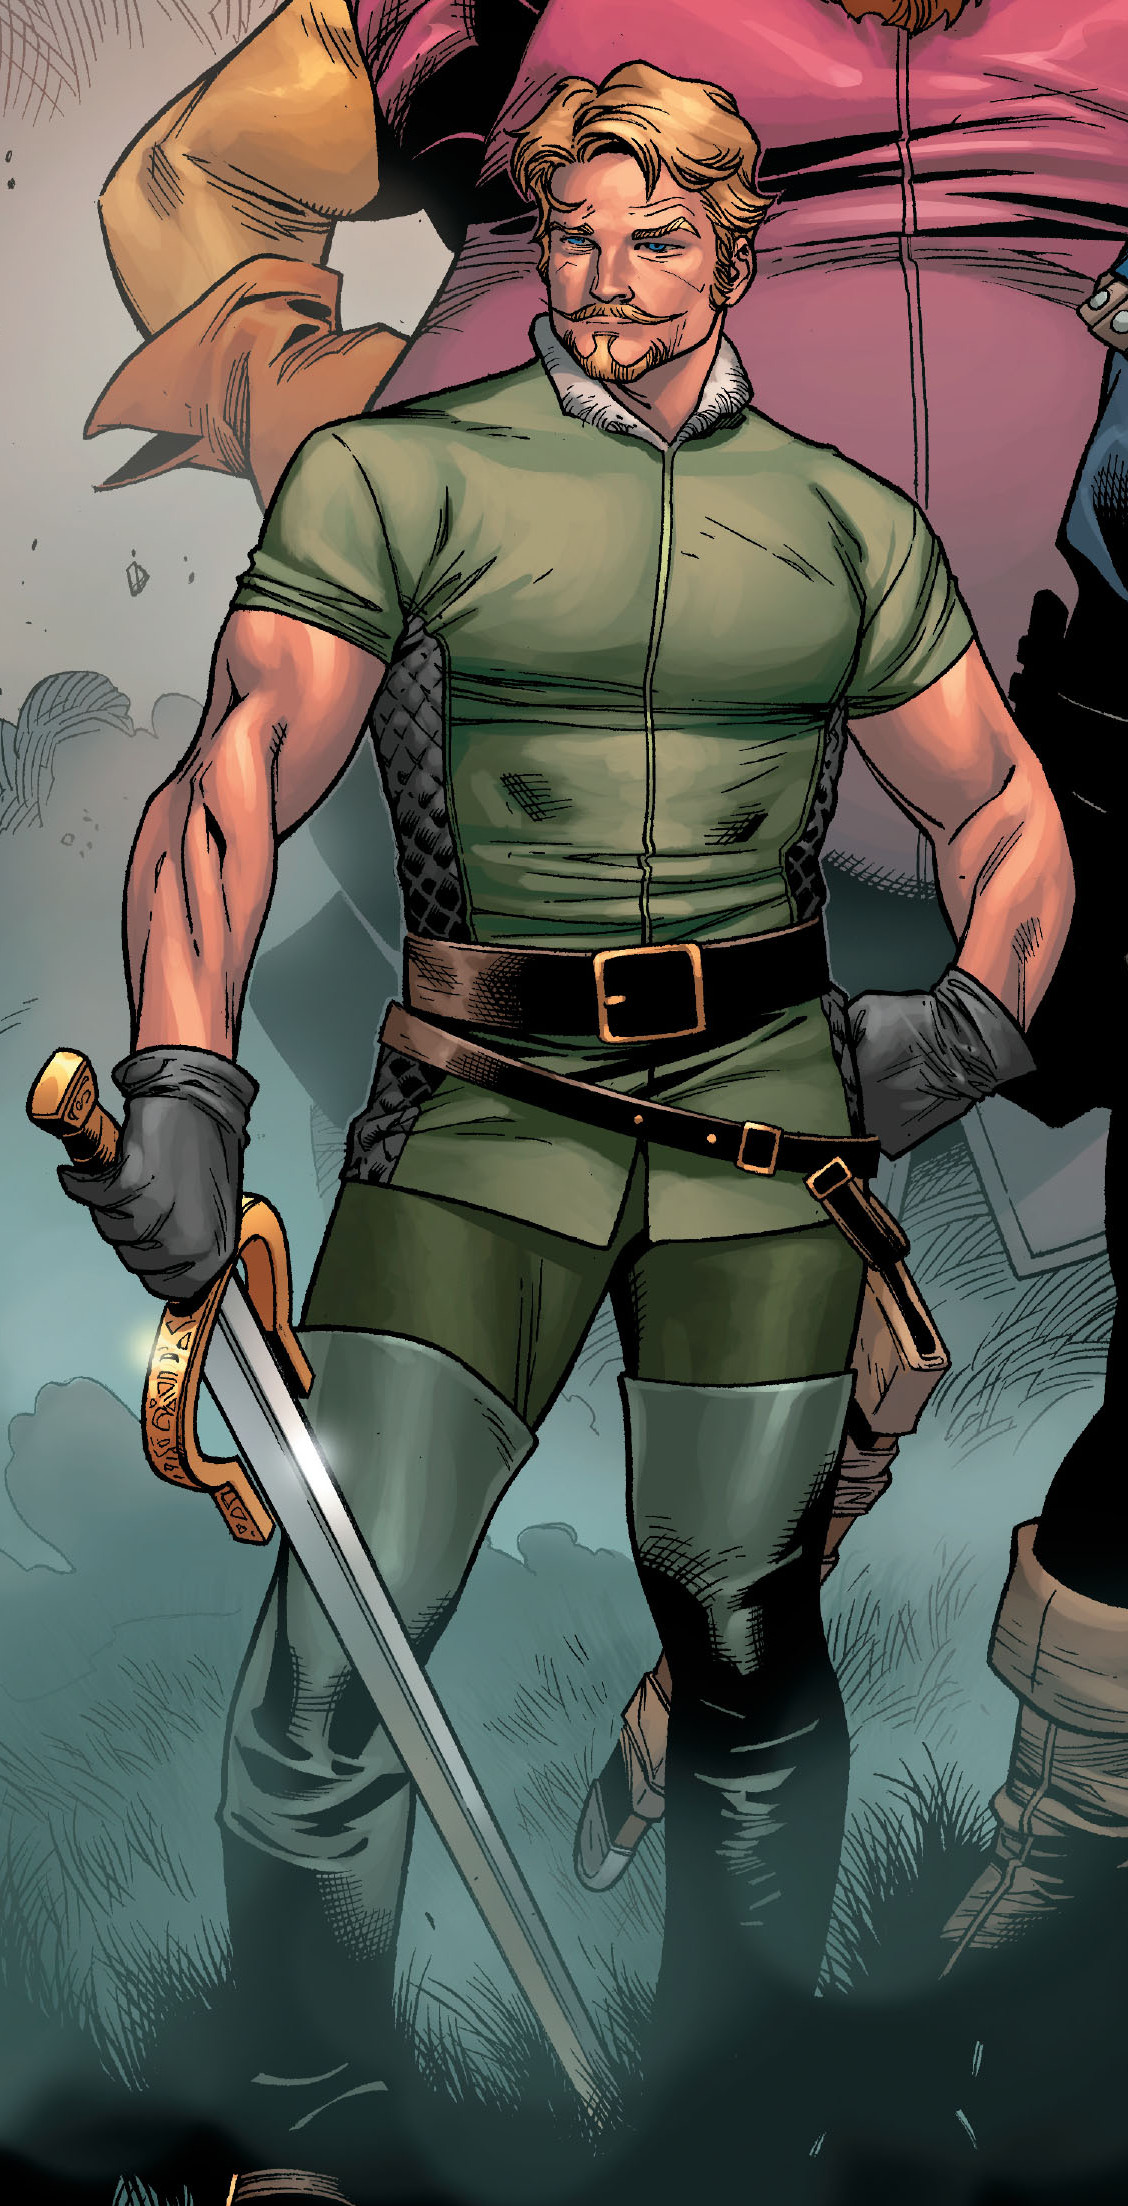 Fandral (Earth-616) from Thor Vol 3 4 0001.jpg